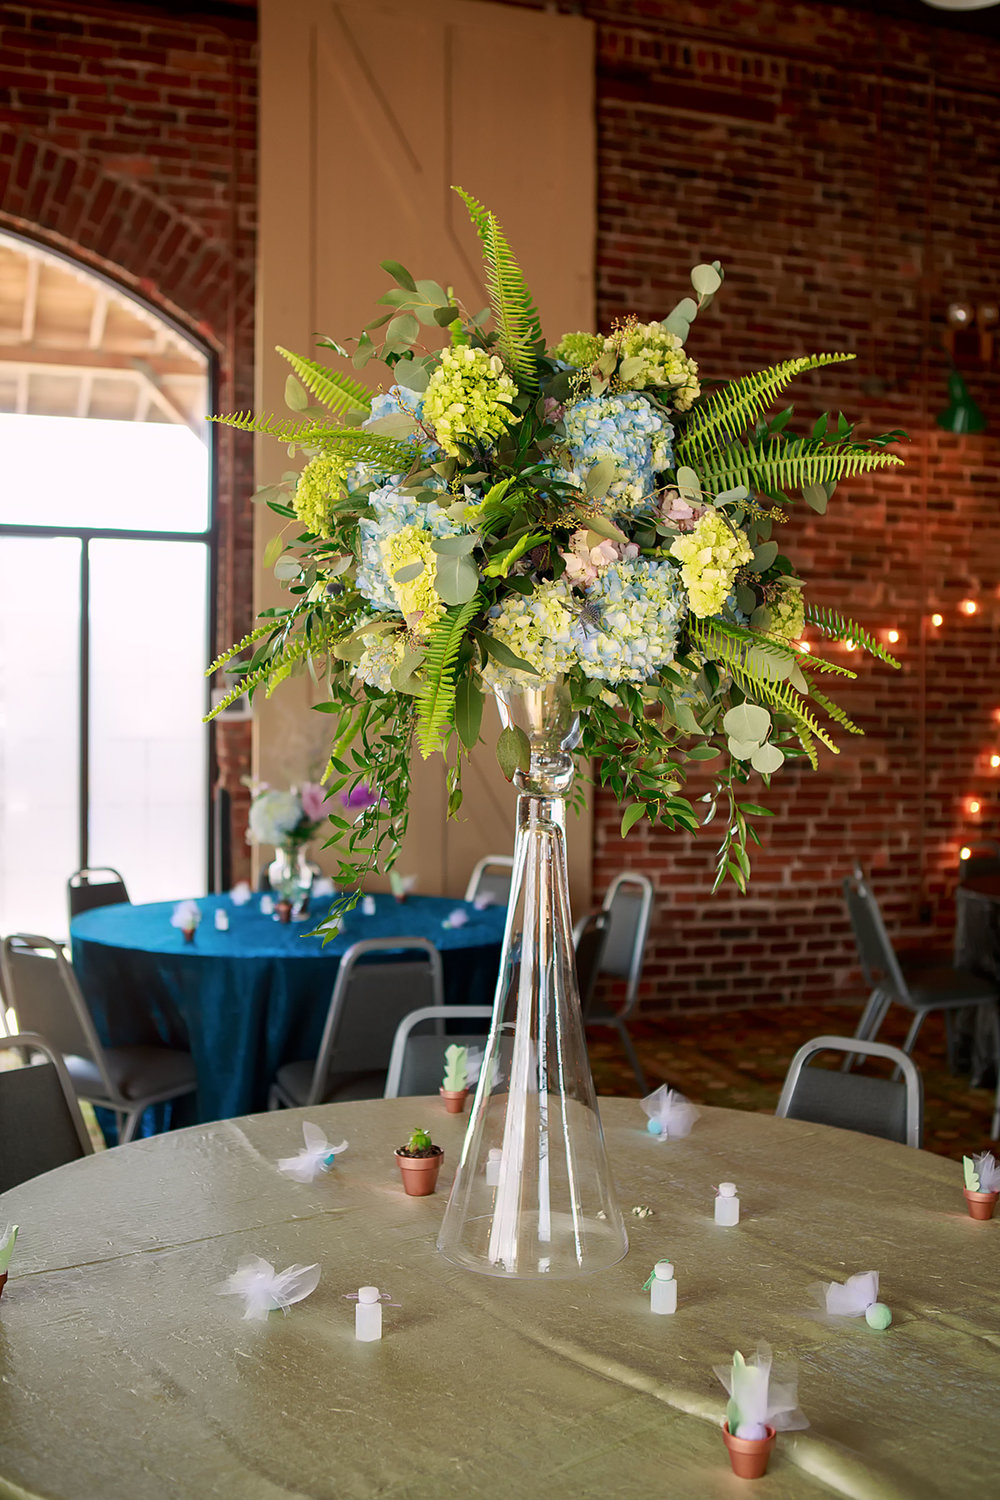 North_Carolina_Wedding_Photographer_Tiffany_Abruzzo_Reception_014.jpg